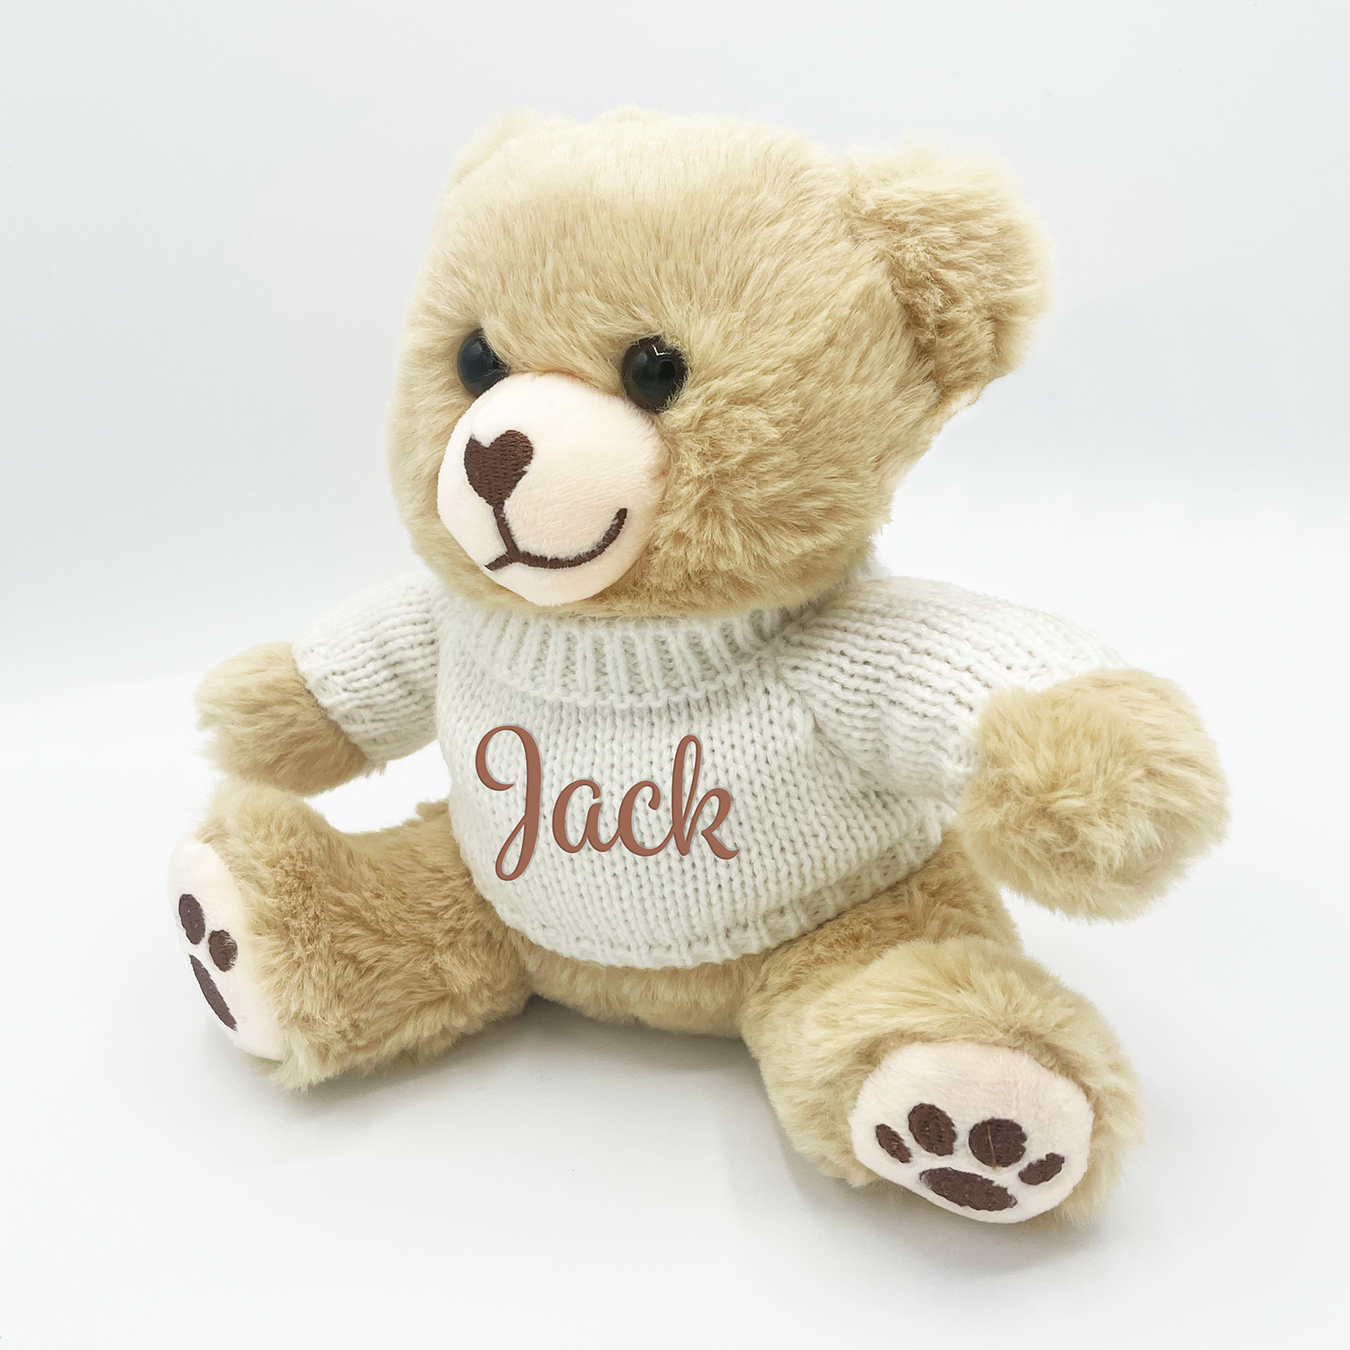 Brown teddy bear with sweater